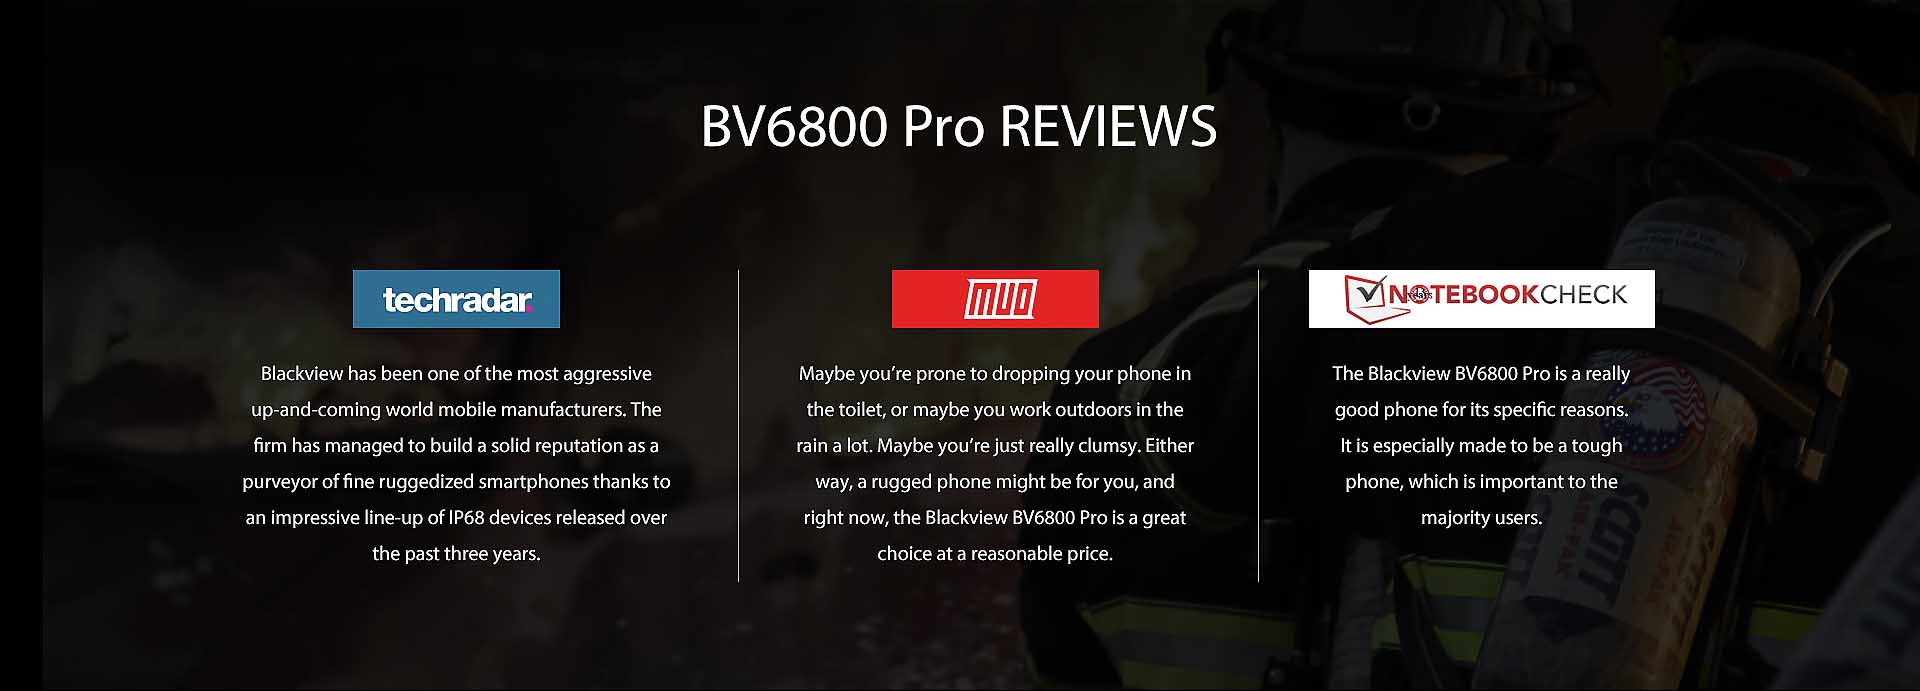 Blackview BV6800 Pro rugged phone